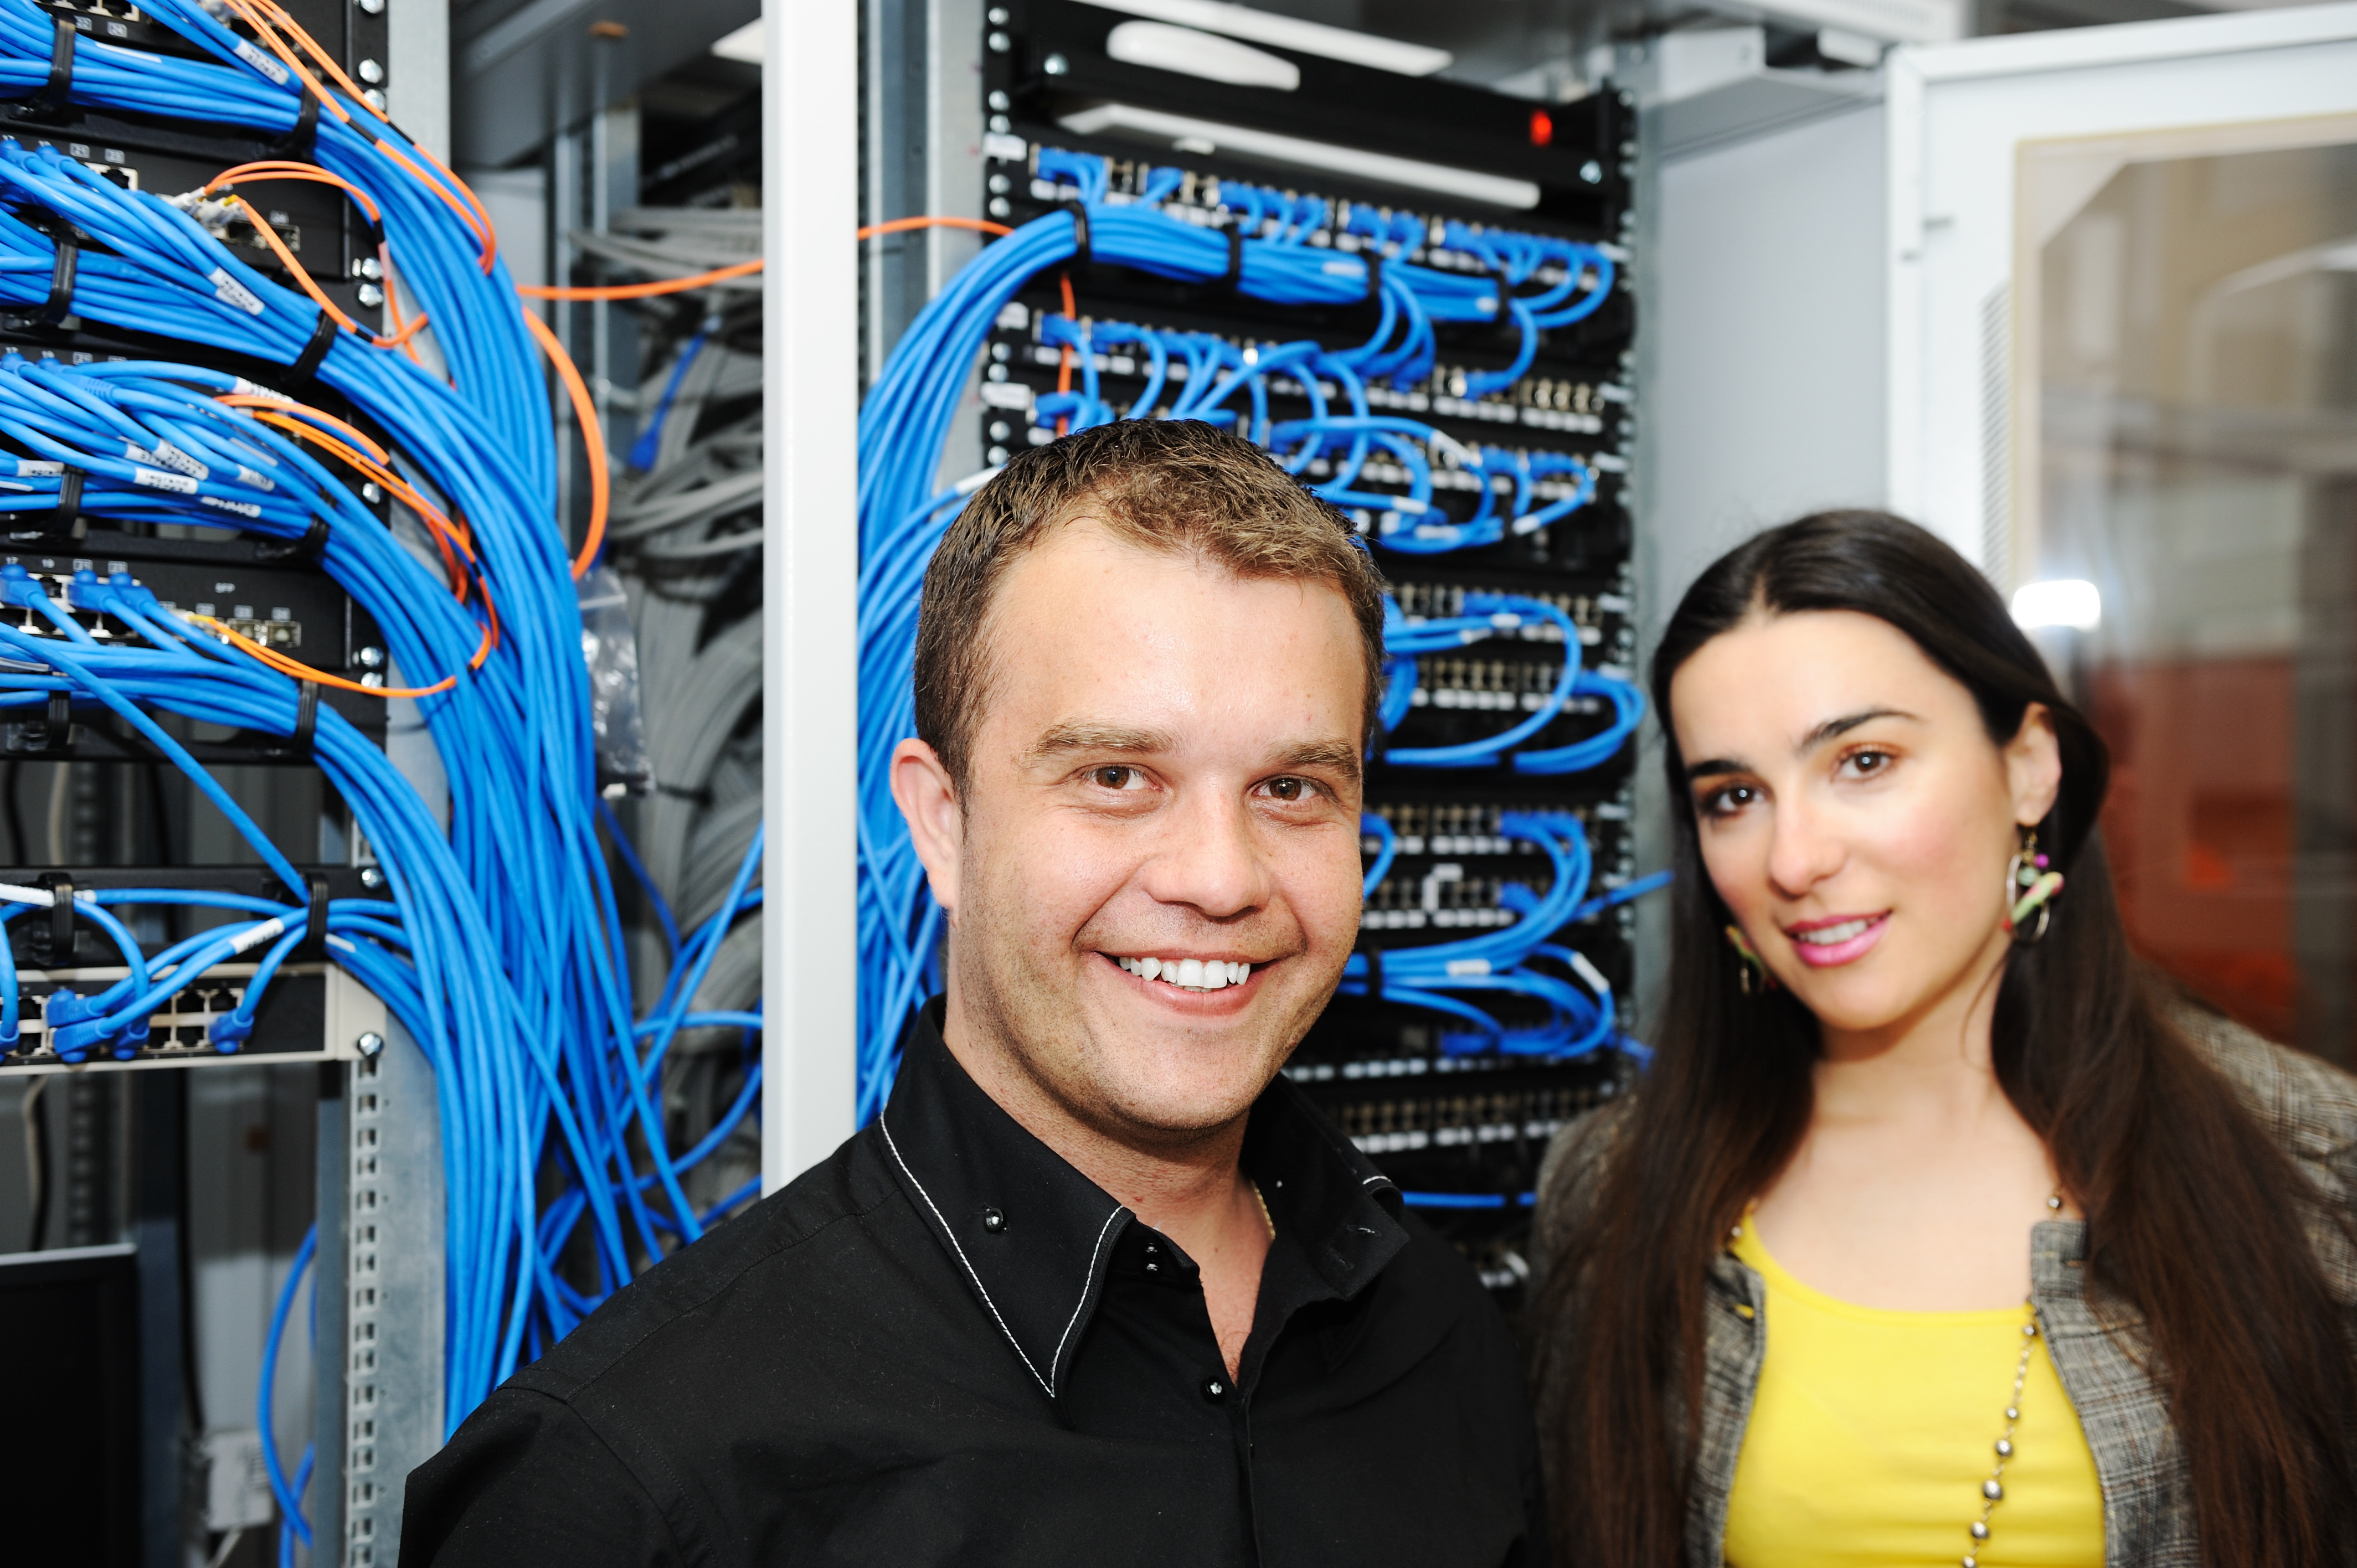 Troubleshooting your network